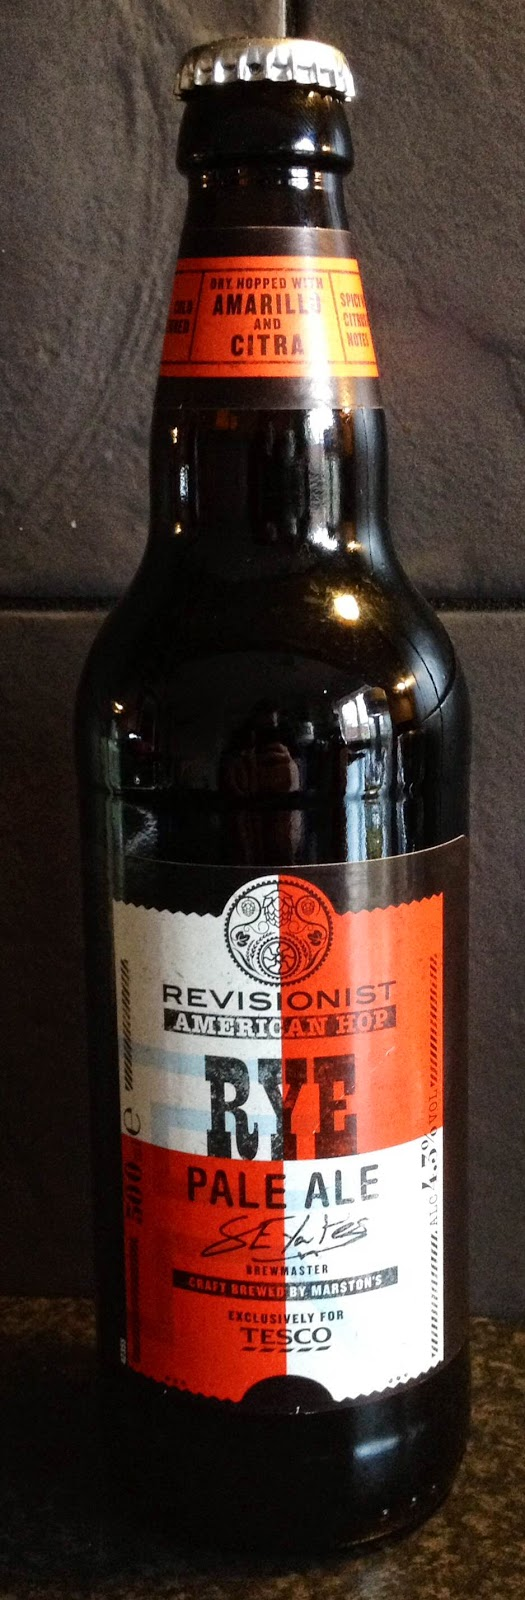 Rye Pale Ale (Marstons for Tesco)